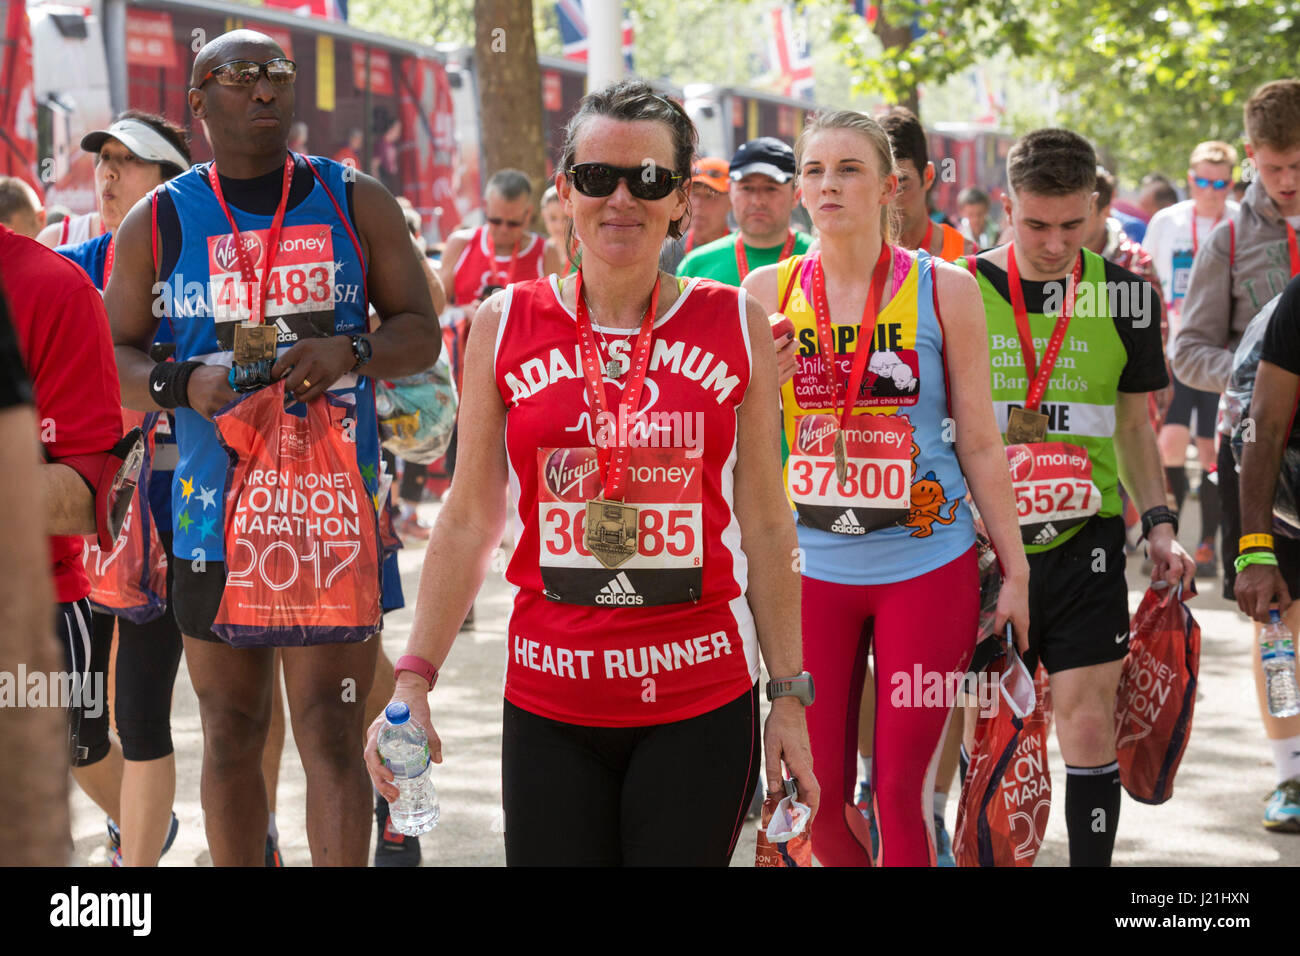 London, UK. 23rd Apr, 2017. Runners finish the 37th London Marathon on the Mall. Credit: Bettina Strenske/Alamy Stock Photo